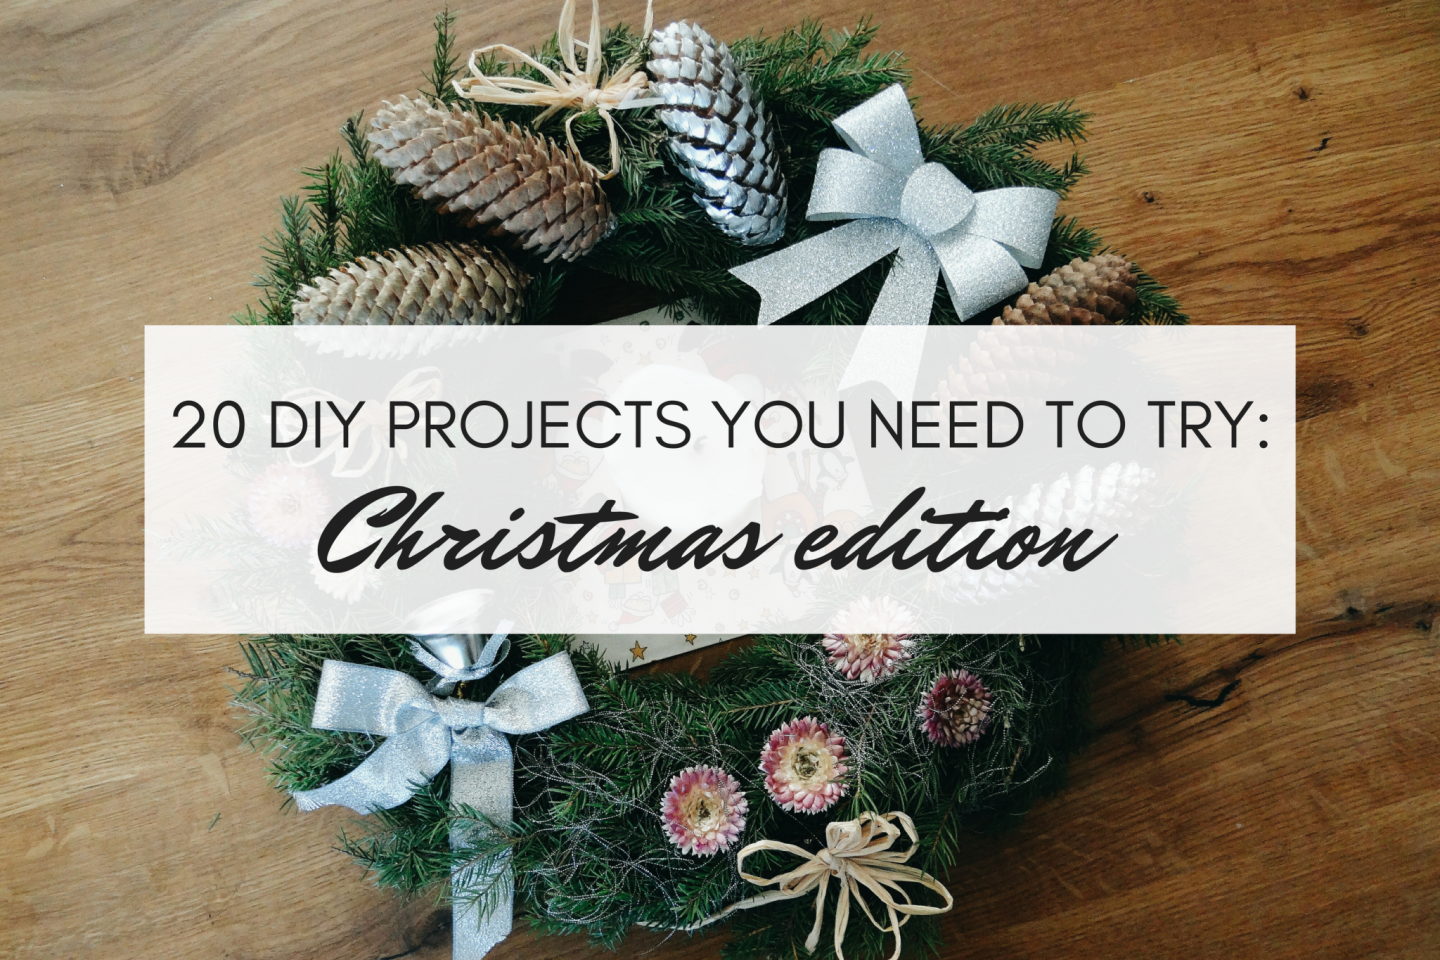 20 DIY Projects You Need To Try This Christmas